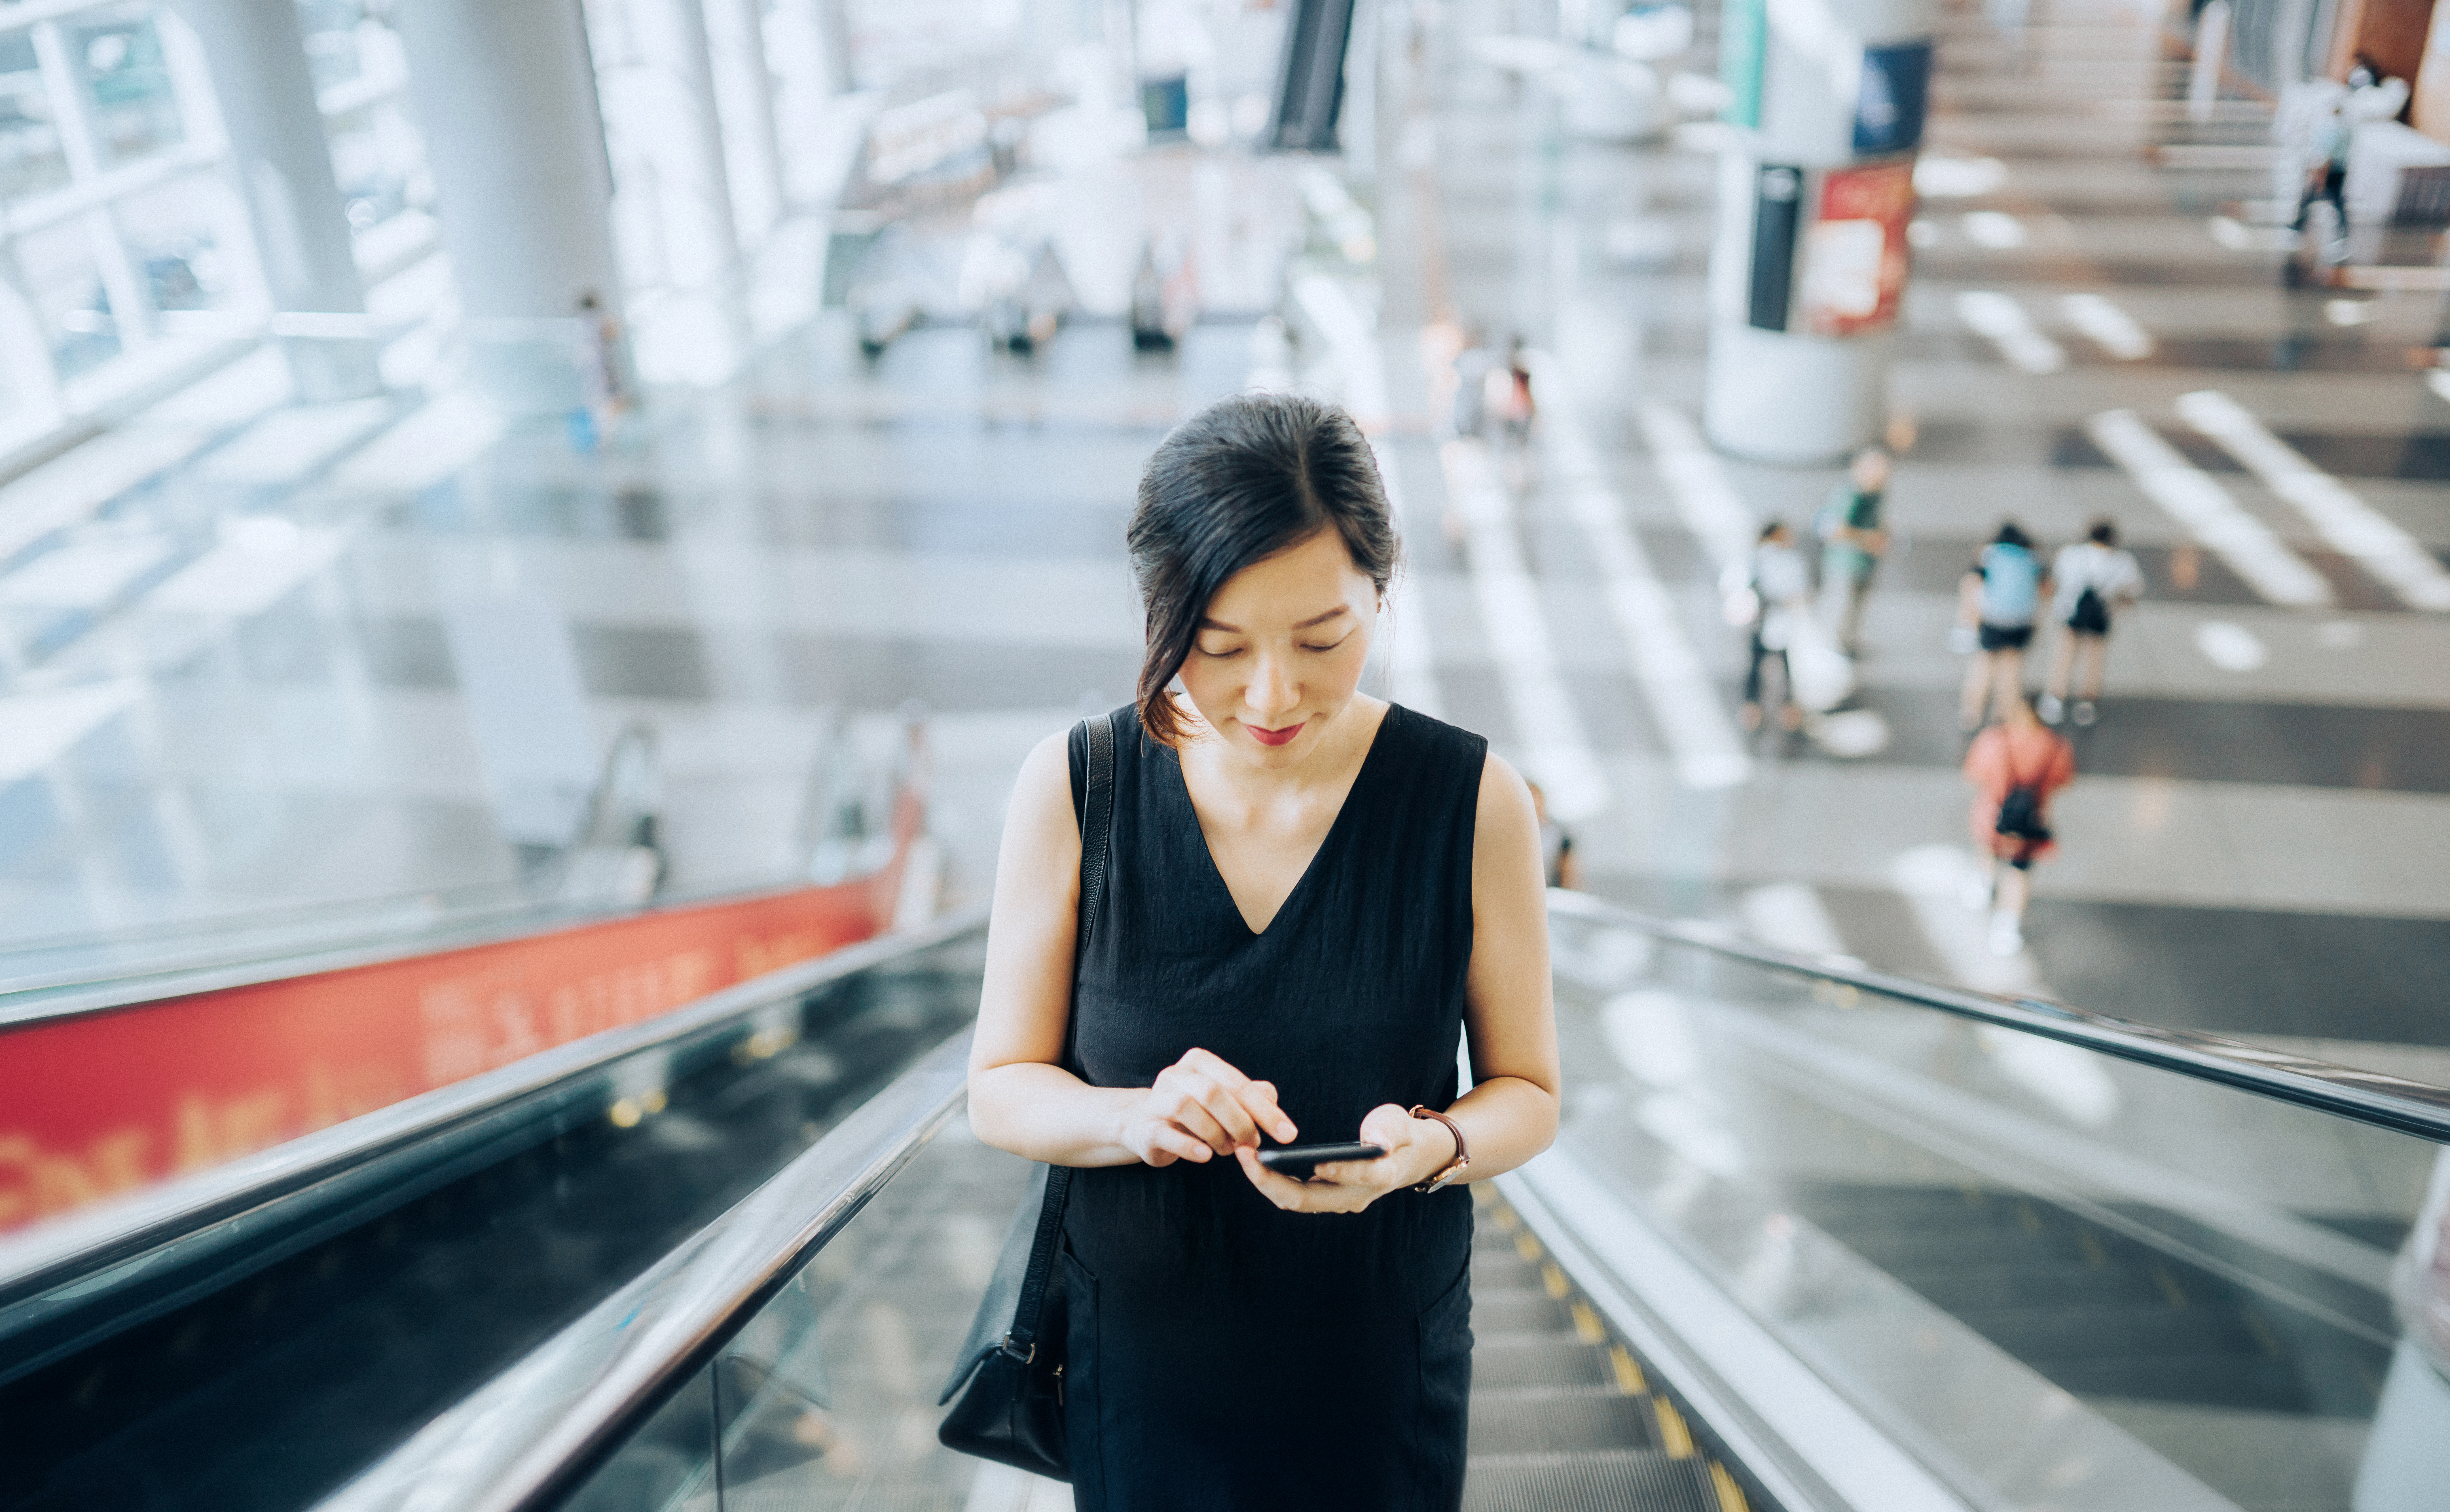 A young woman on an escalator looks at her phone.